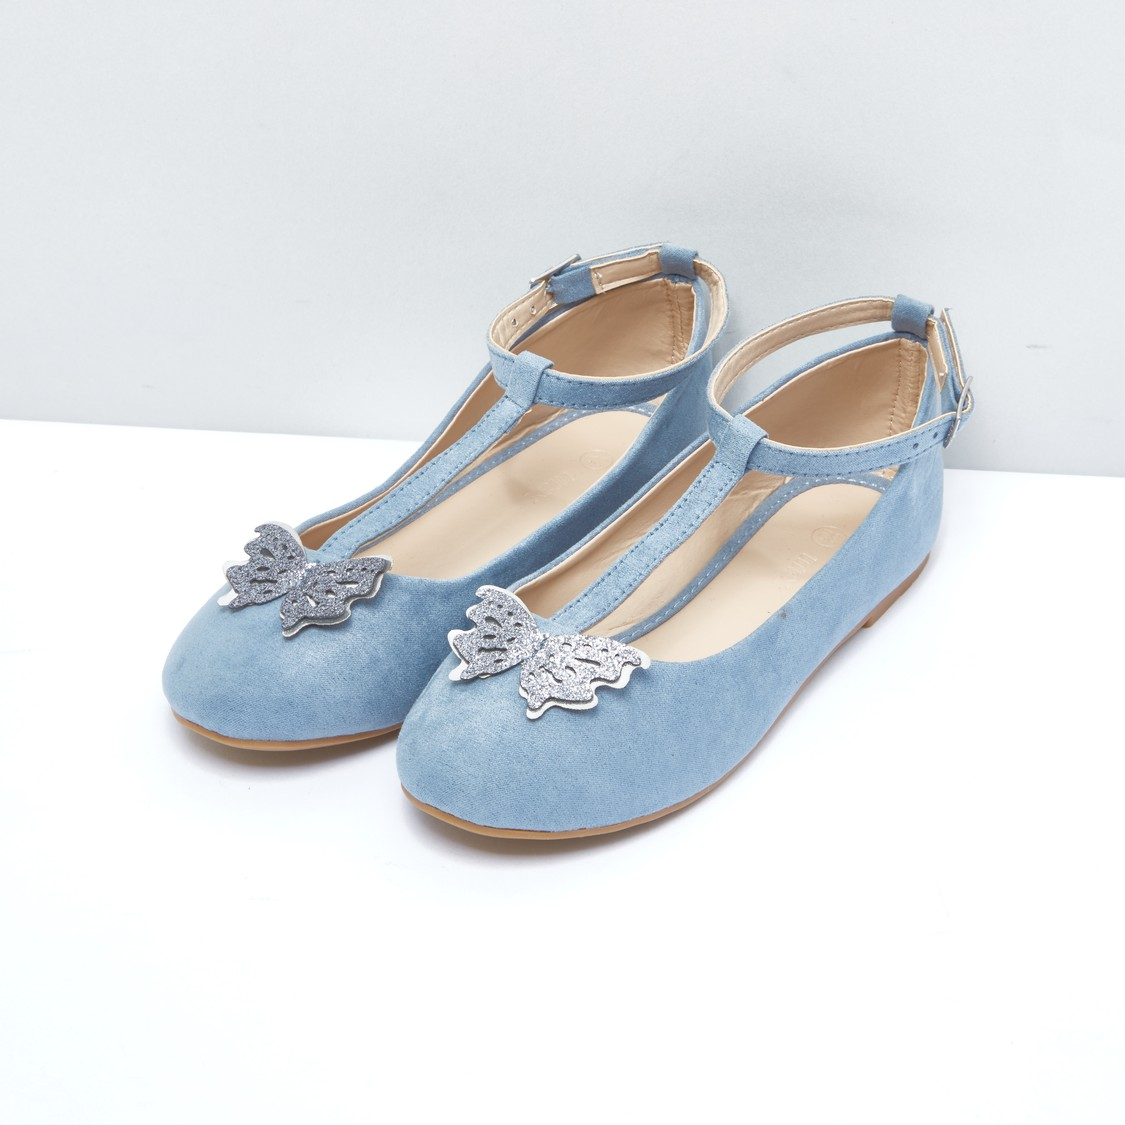 Butterfly Applique Detail Shoes with Pin Buckle Closure